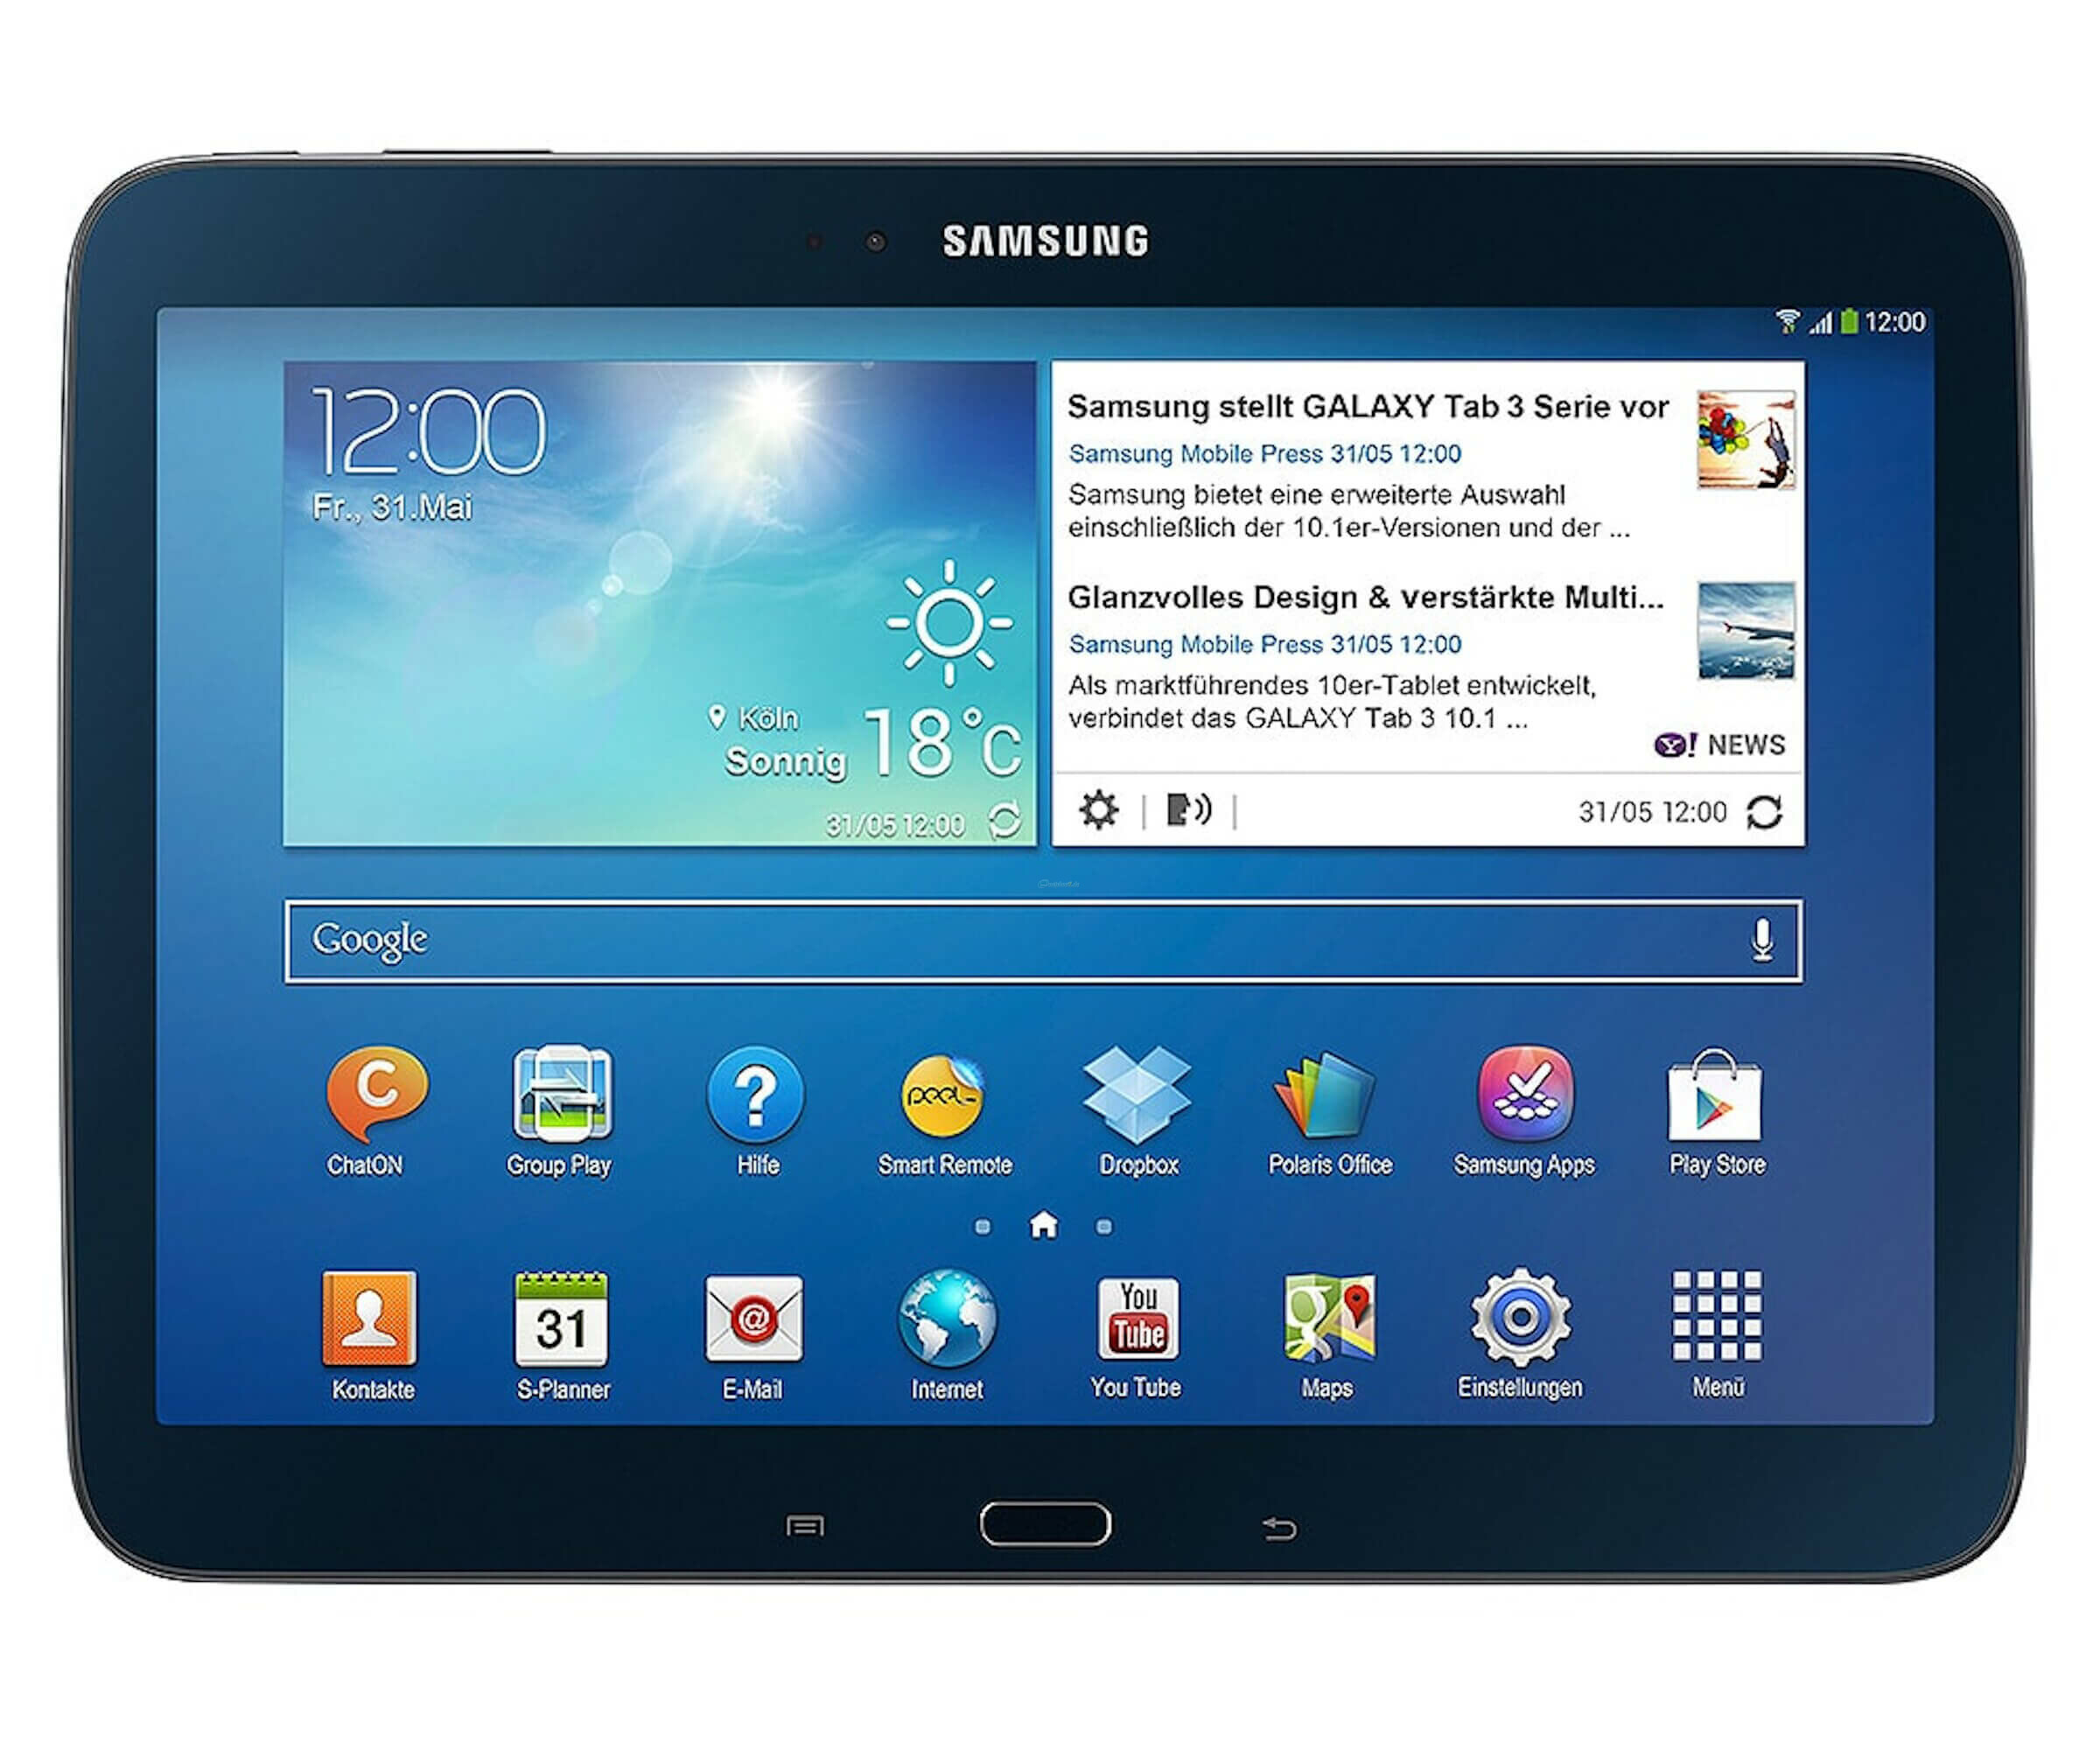 Samsung Galaxy Tab 3 - Tablet - Android 4 - 16 GB - 25.7 cm ( 10.1 ) - Multi-Touch